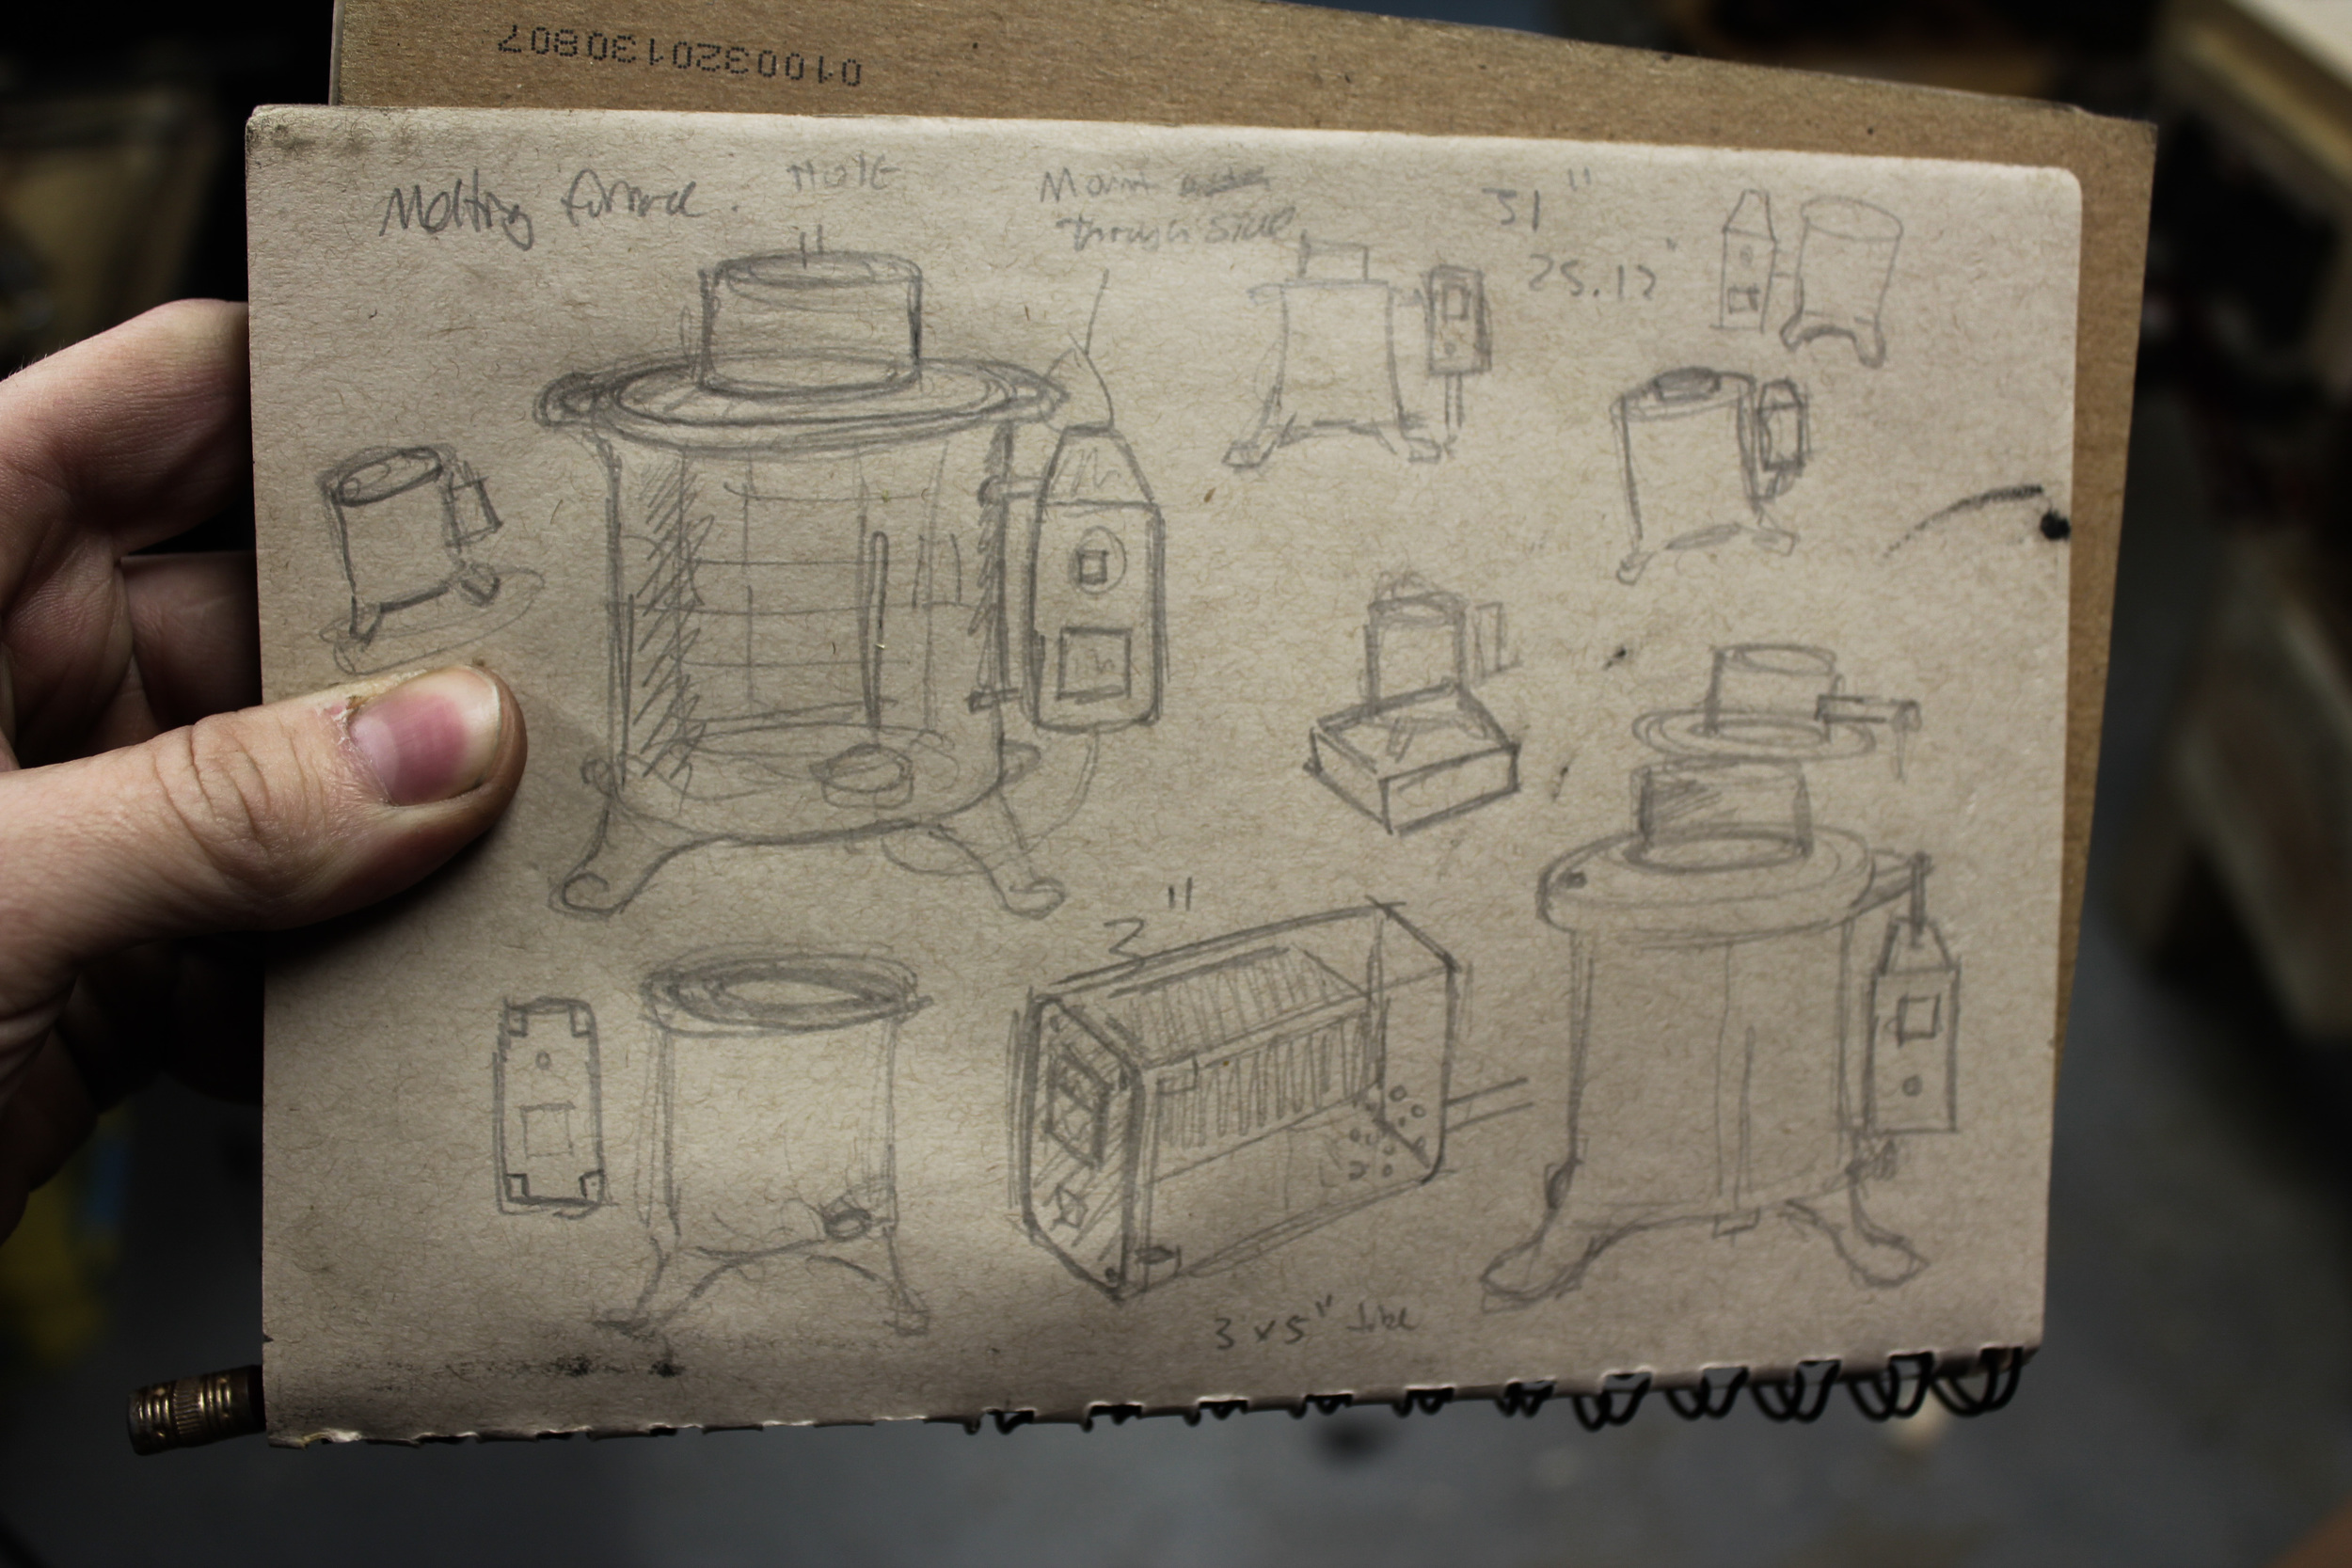 Furnace configuration sketches